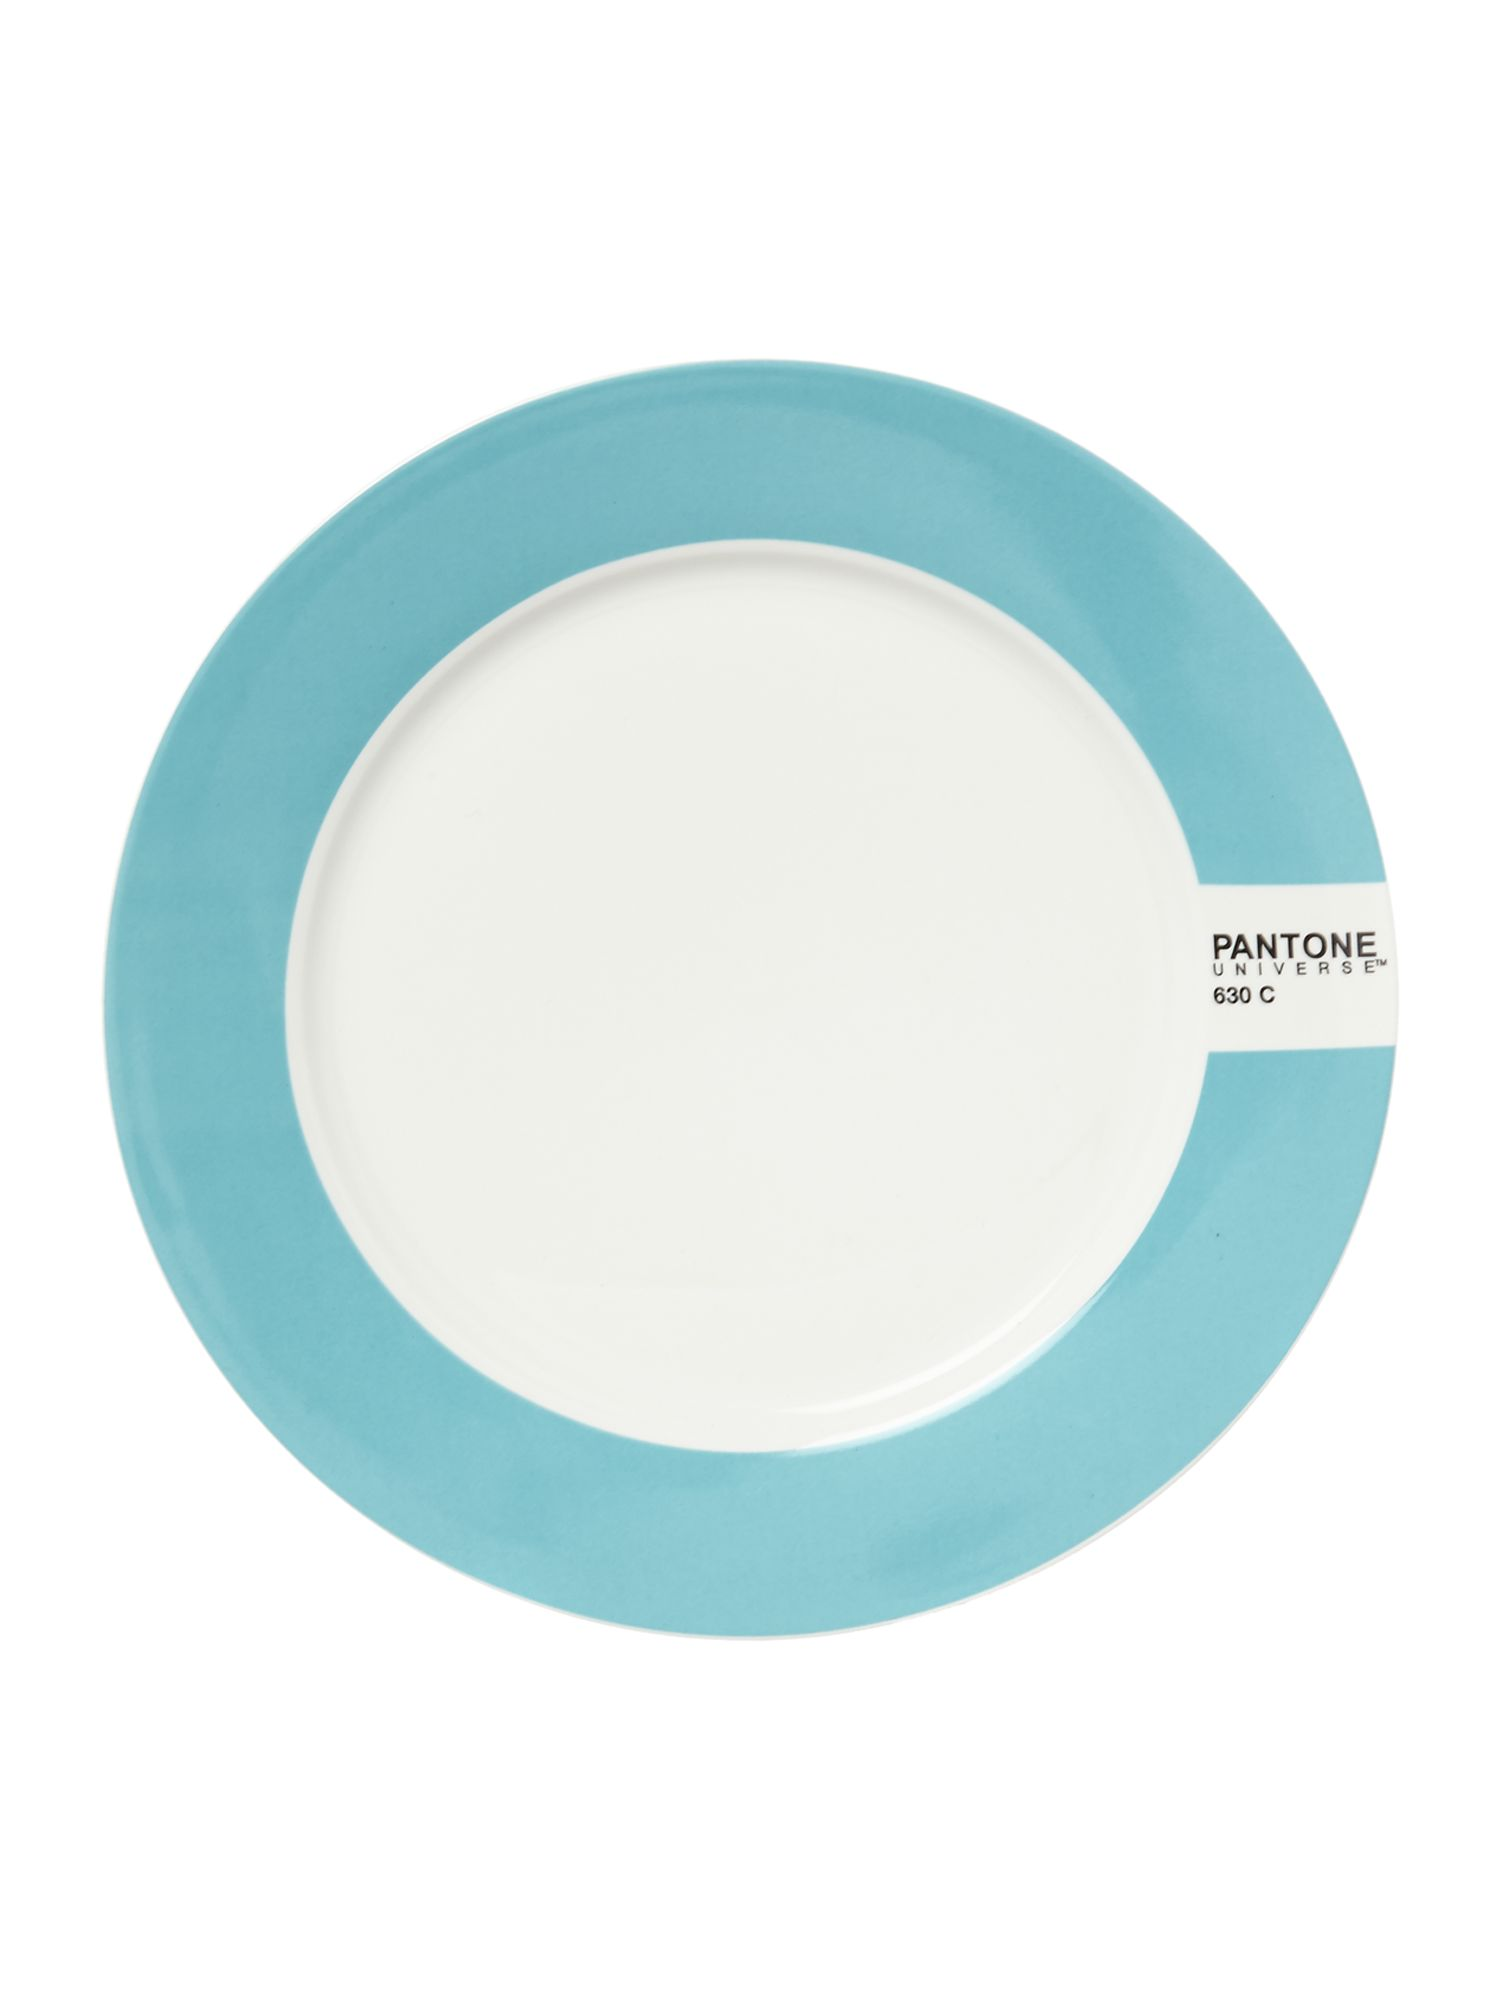 Image of Pantone Small plate luca trazzi green